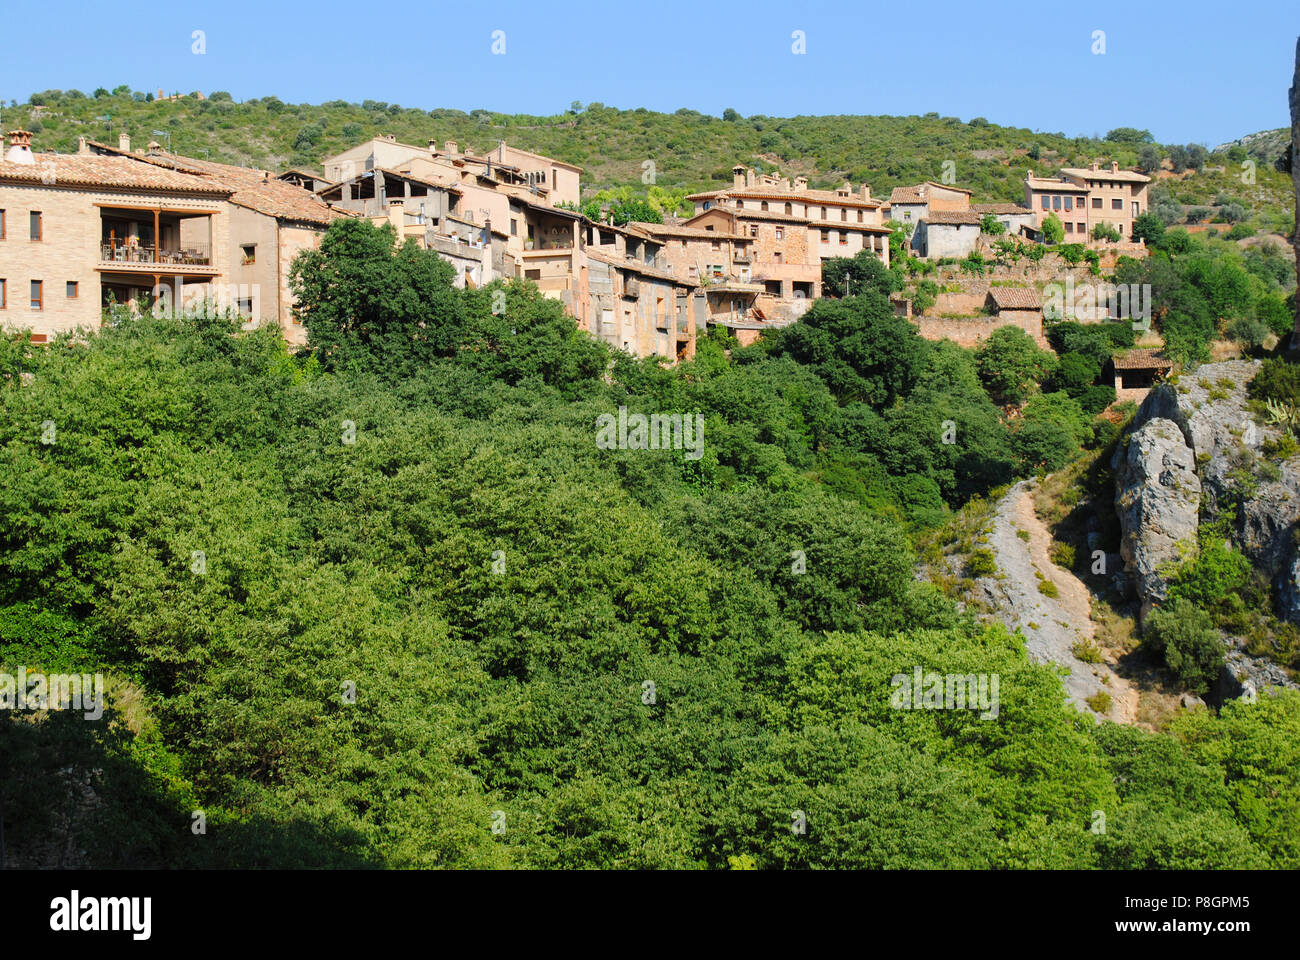 The view of Alquézar, a medieval village in Aragon, Spain. - Stock Image